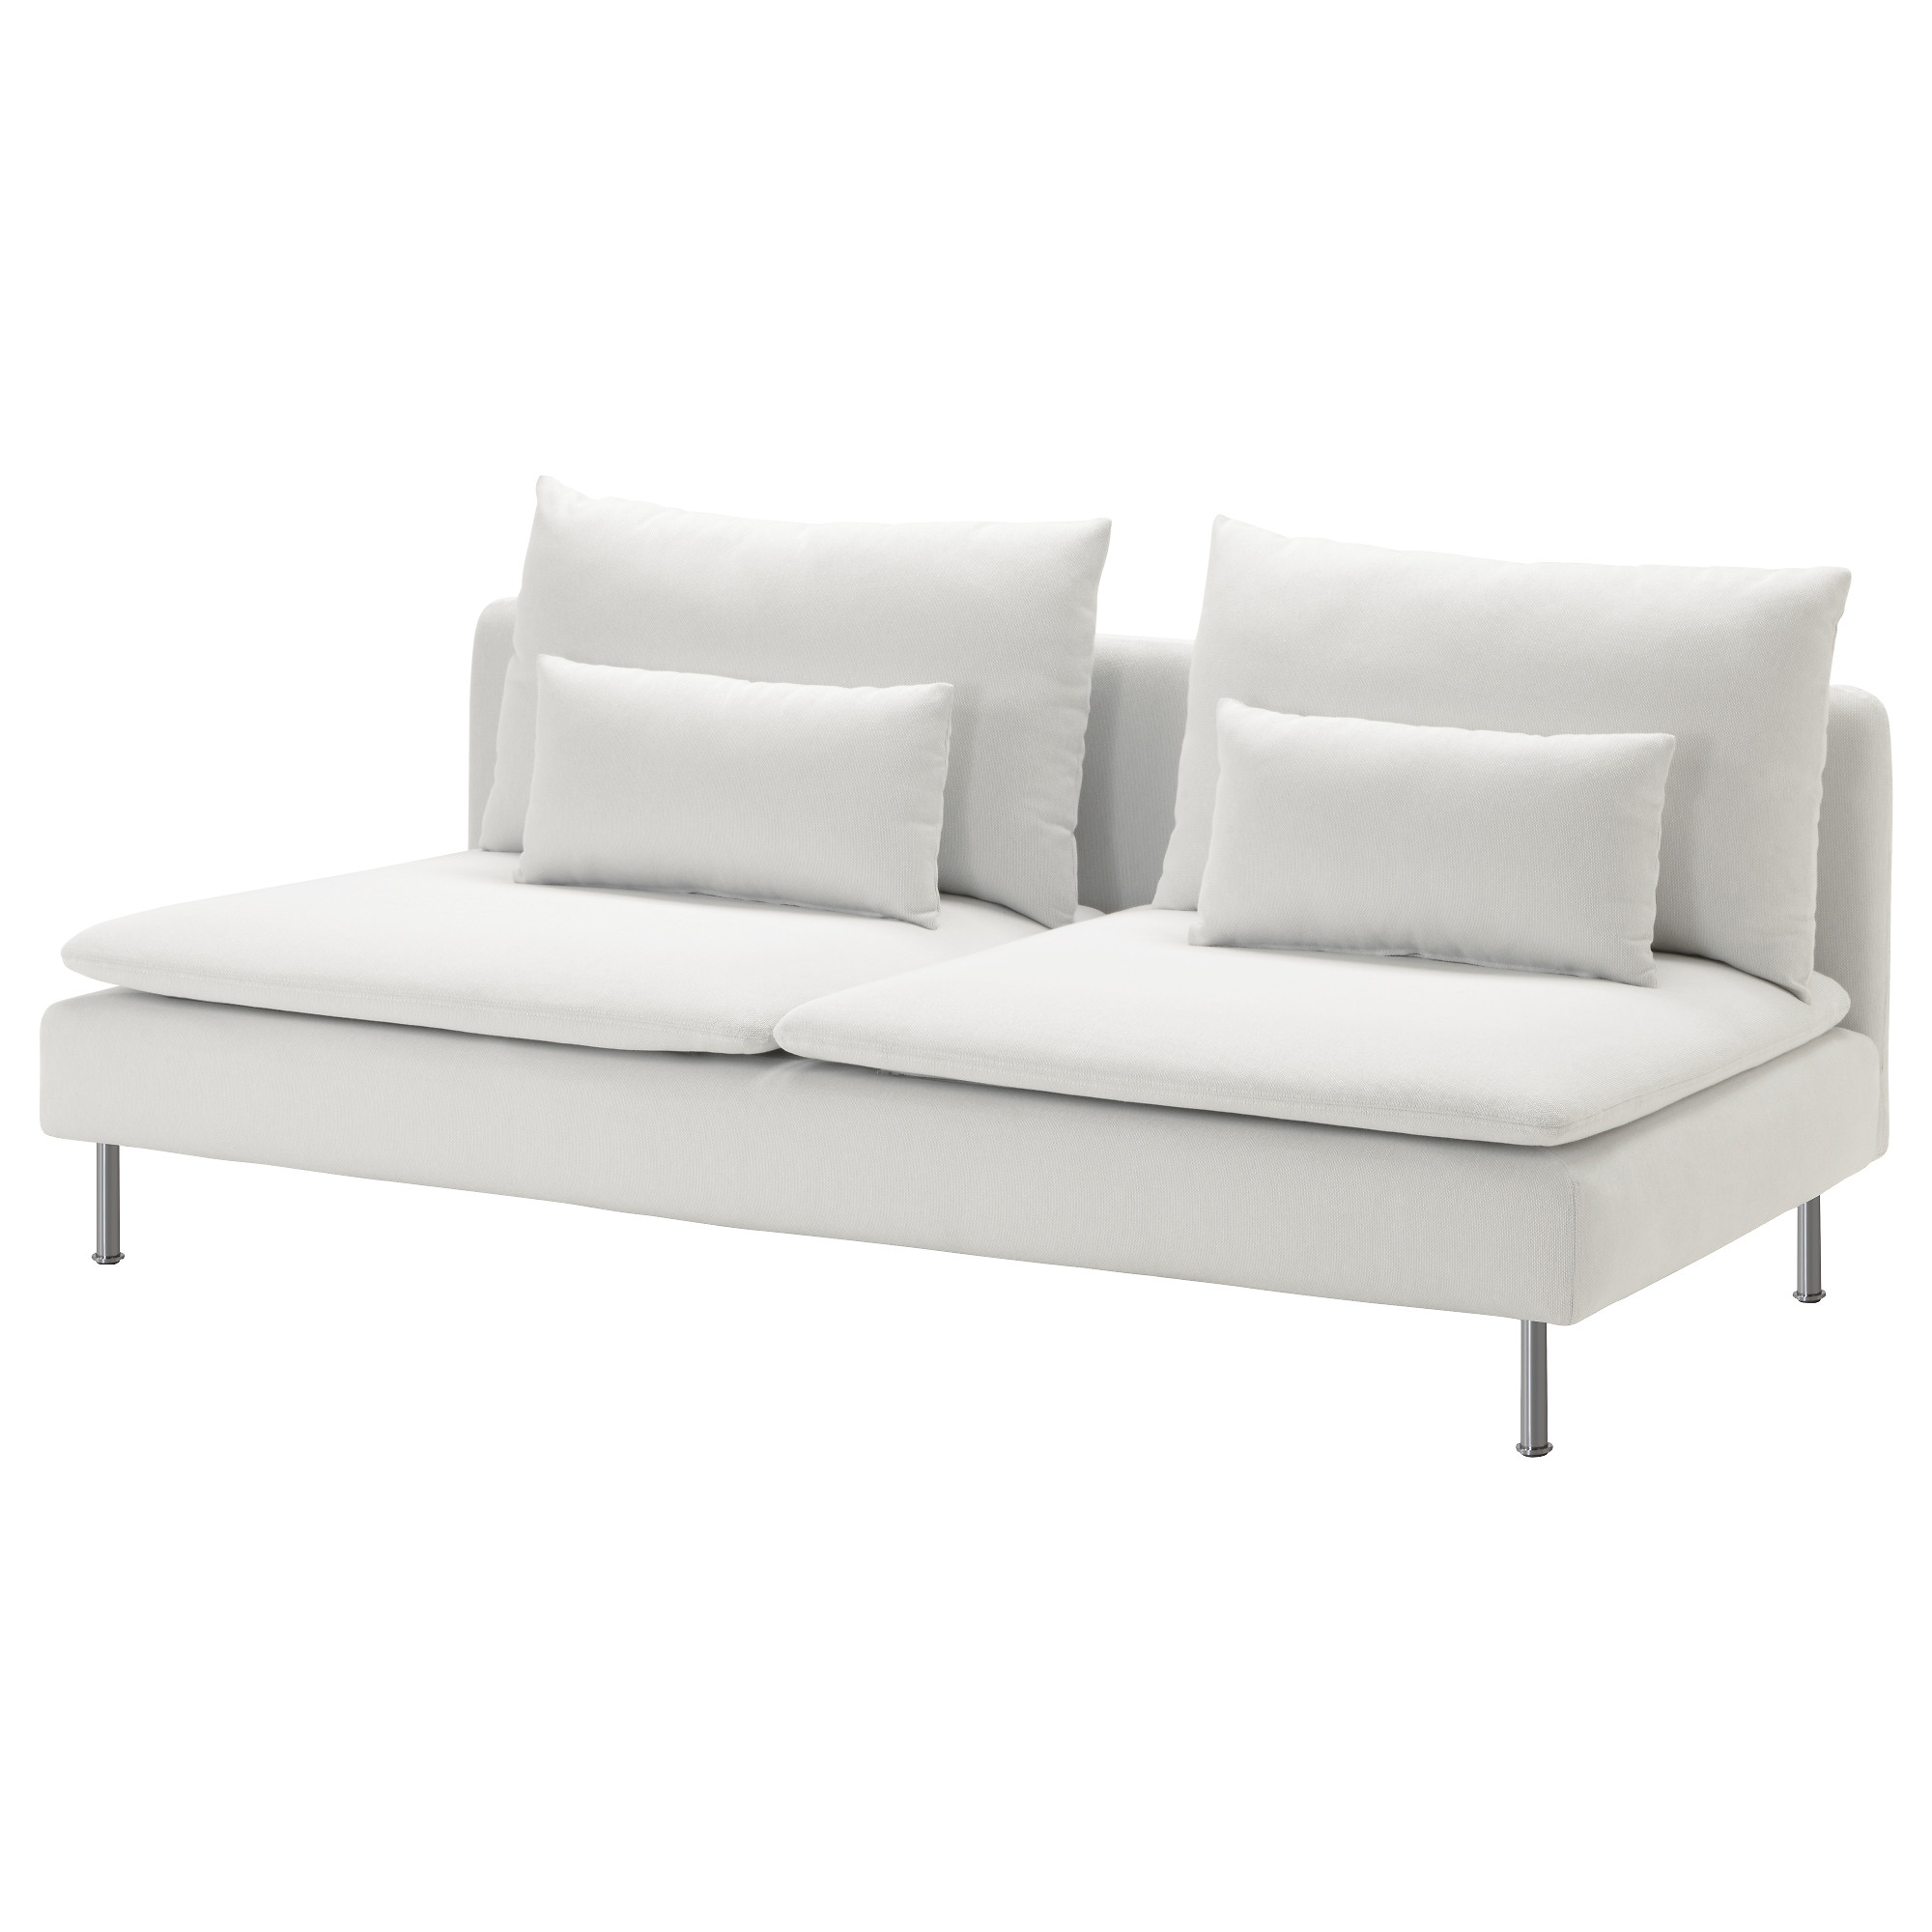 Schlafsofa ikea  SÖDERHAMN Sofa section - Finnsta white - IKEA